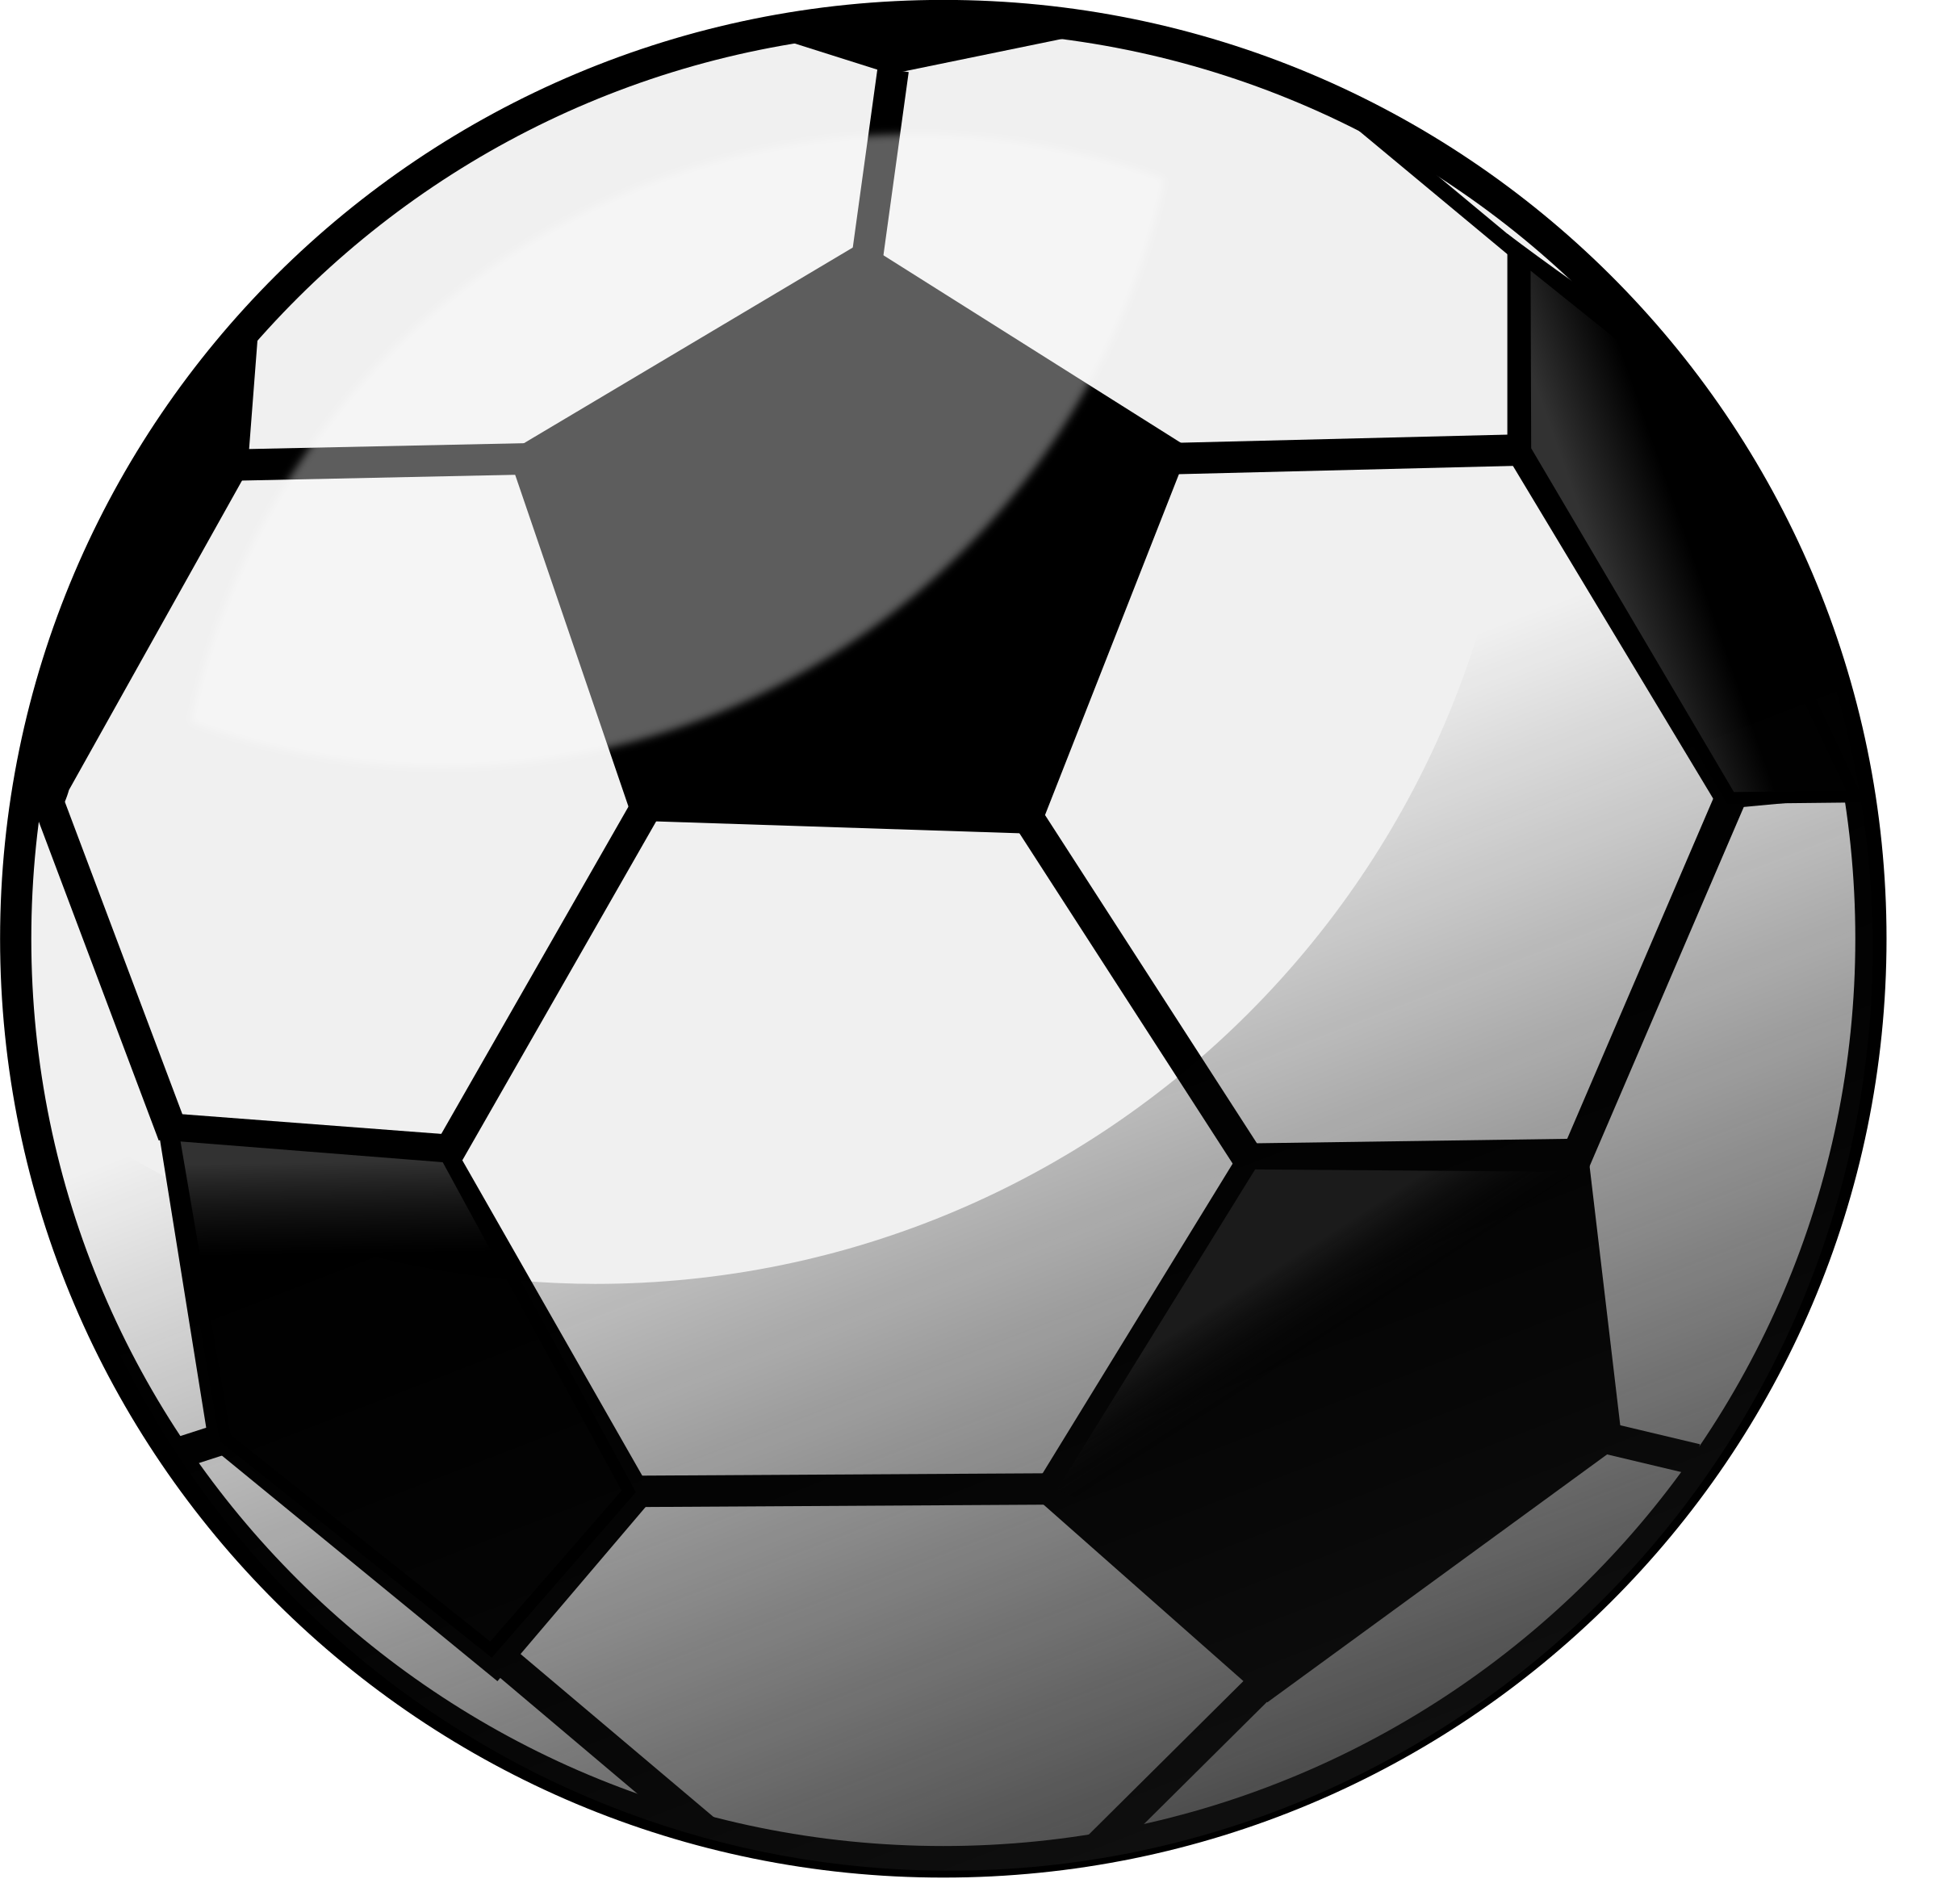 Football images. Ball png banner free